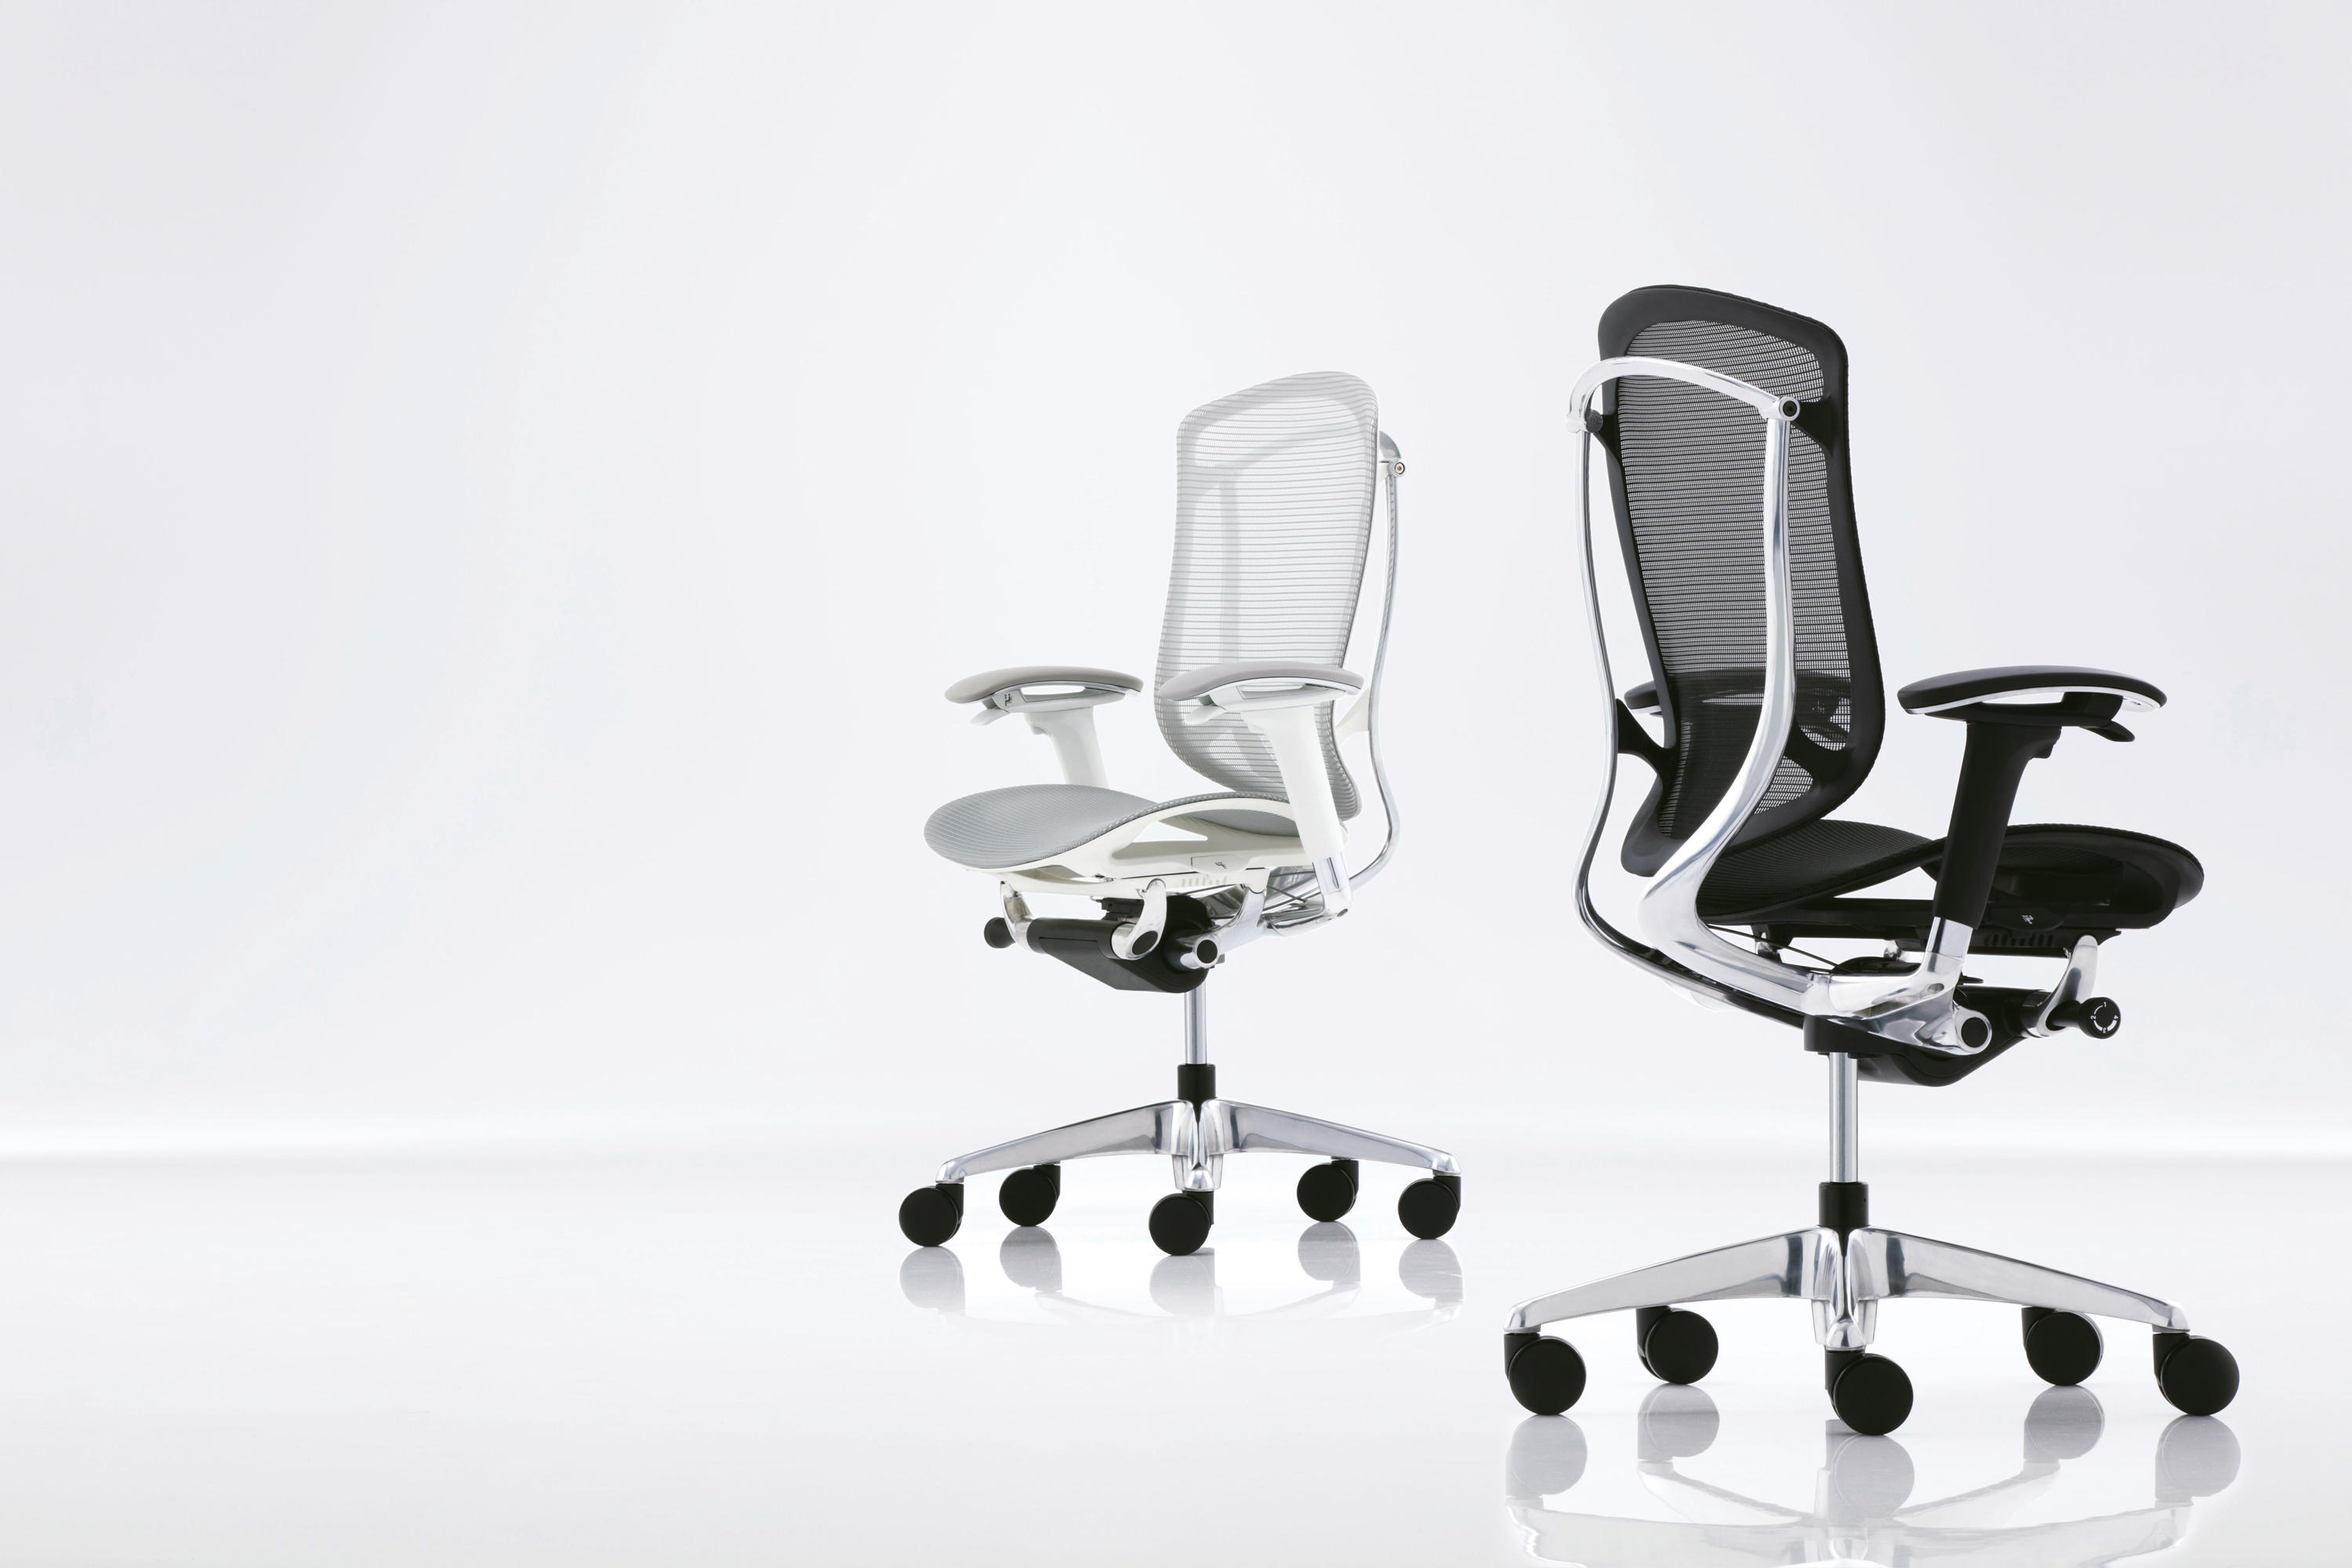 Contessa Chair Nuova Contessa Office Chairs From Teknion Architonic